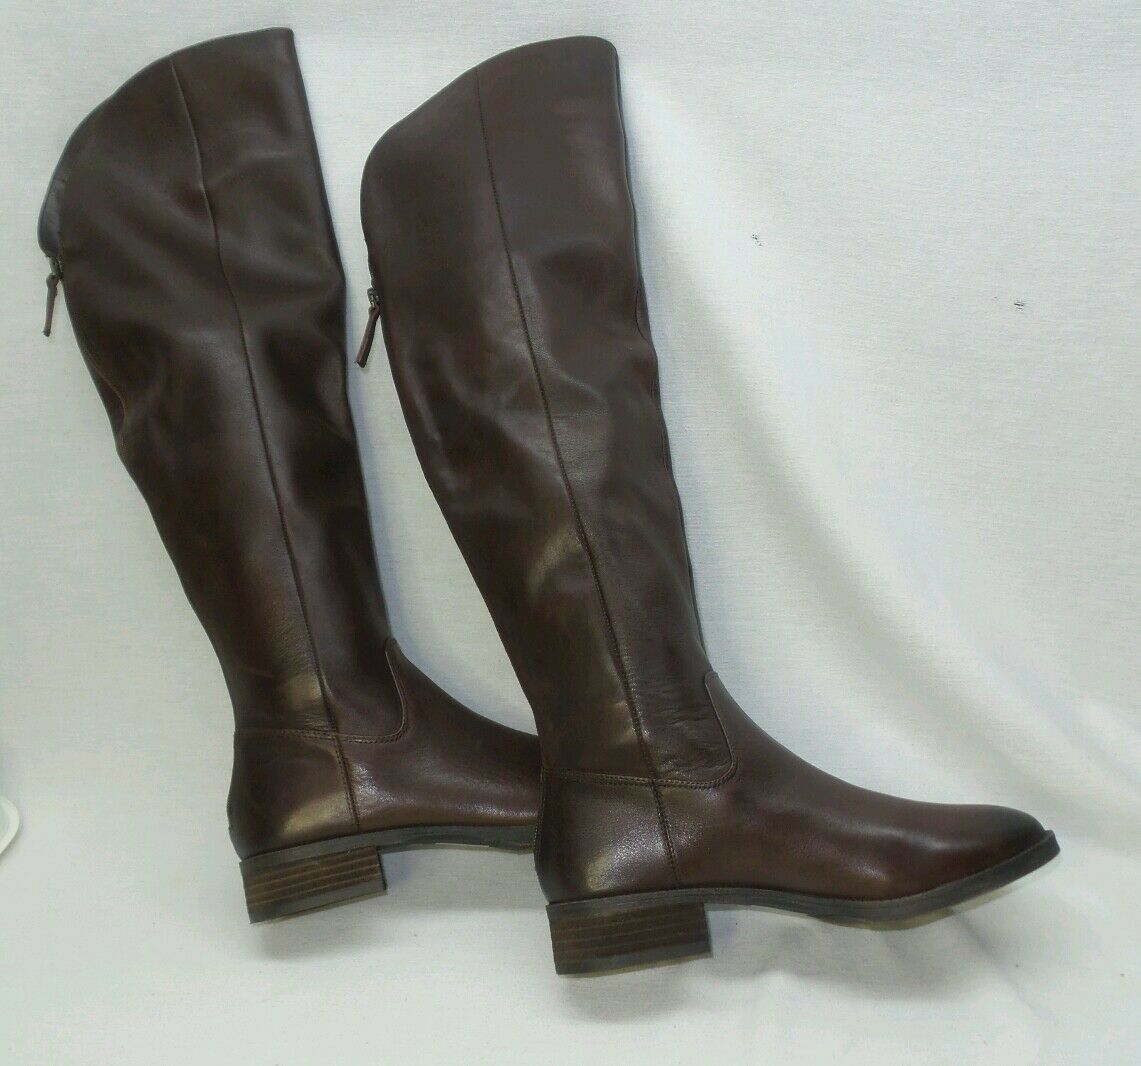 NEW Sole Sole Sole Society Leather Over-the-Knee Boots ANDIE Dark Brown size 8 1b7034